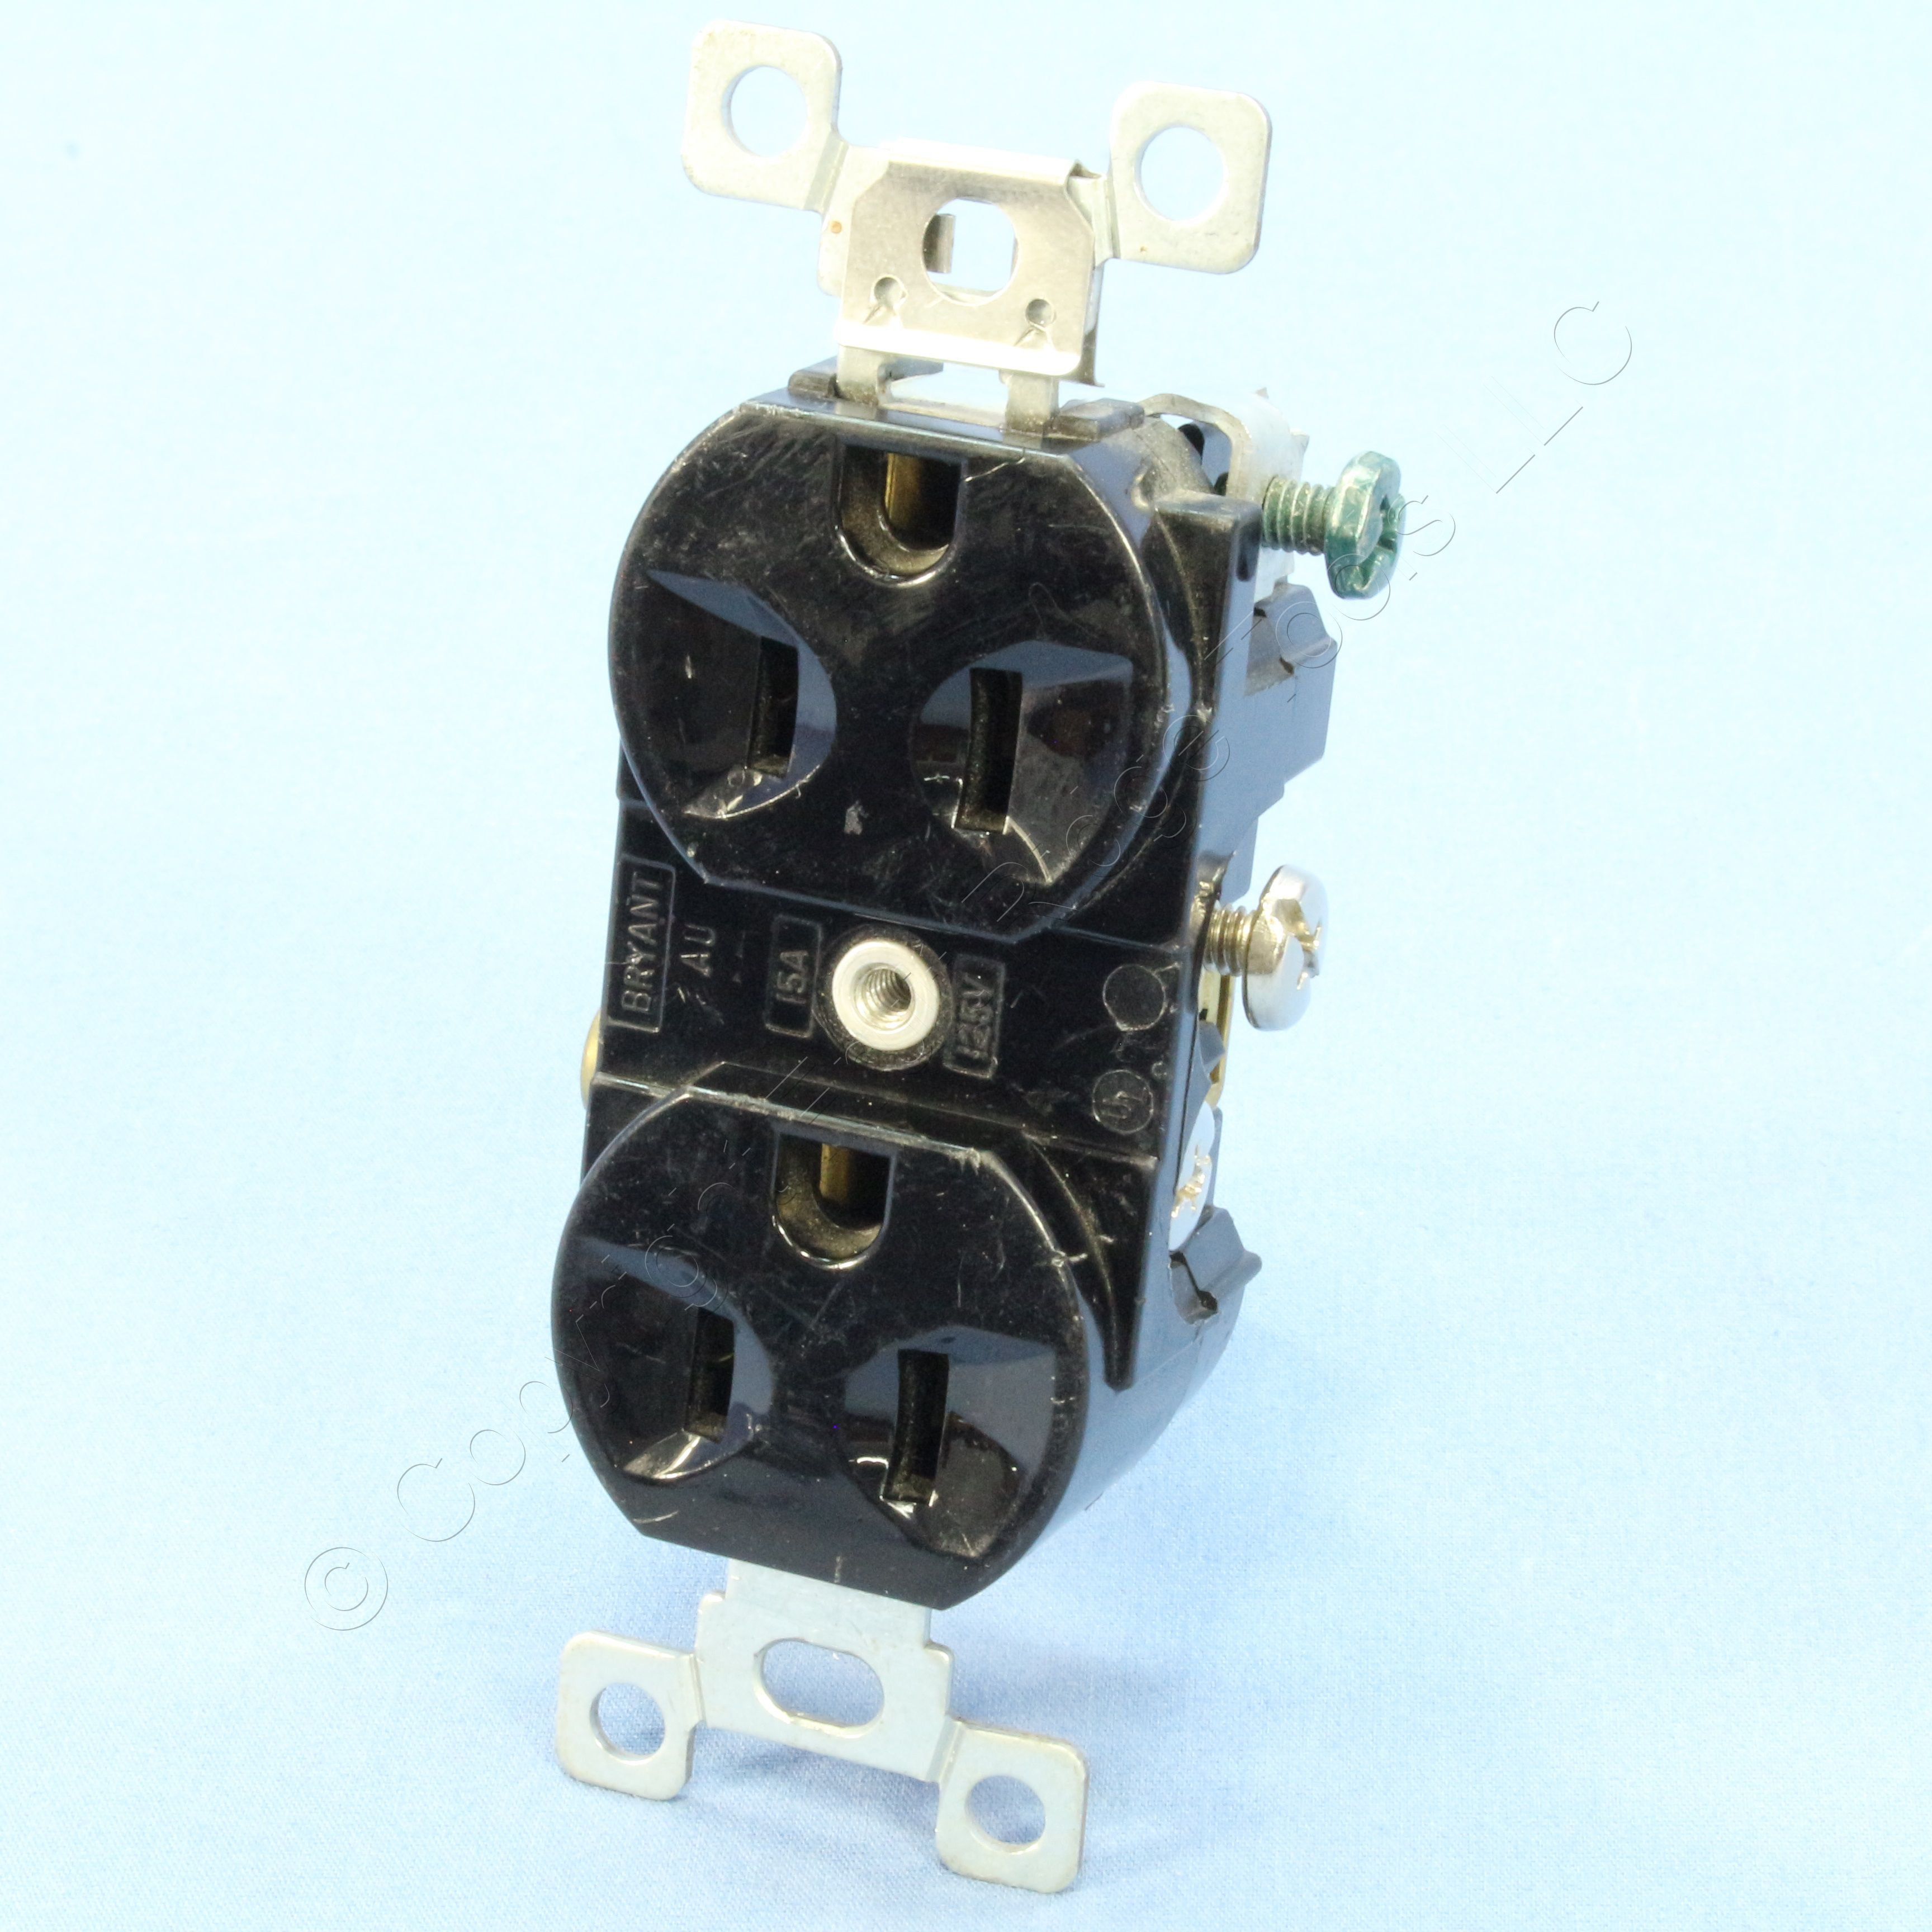 HUBBELL BLACK RECEPTACLE OUTLET 15A 125V